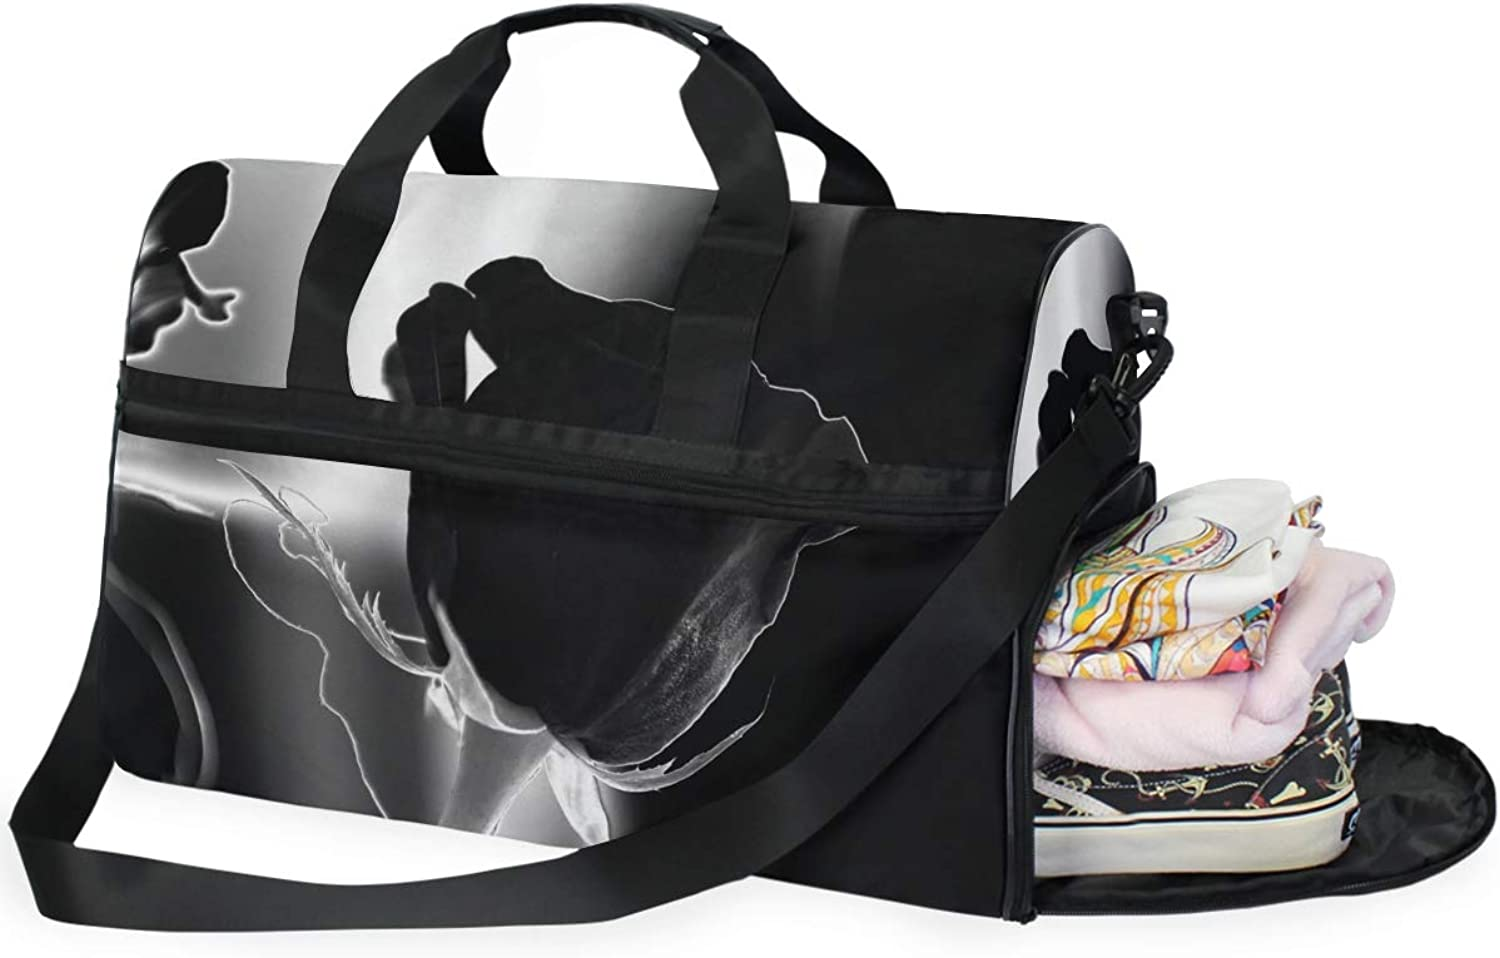 MONTOJ Awesome Black pink Oversized Canvas Travel Tote Duffel Shoulder Overnight Weekend Bag